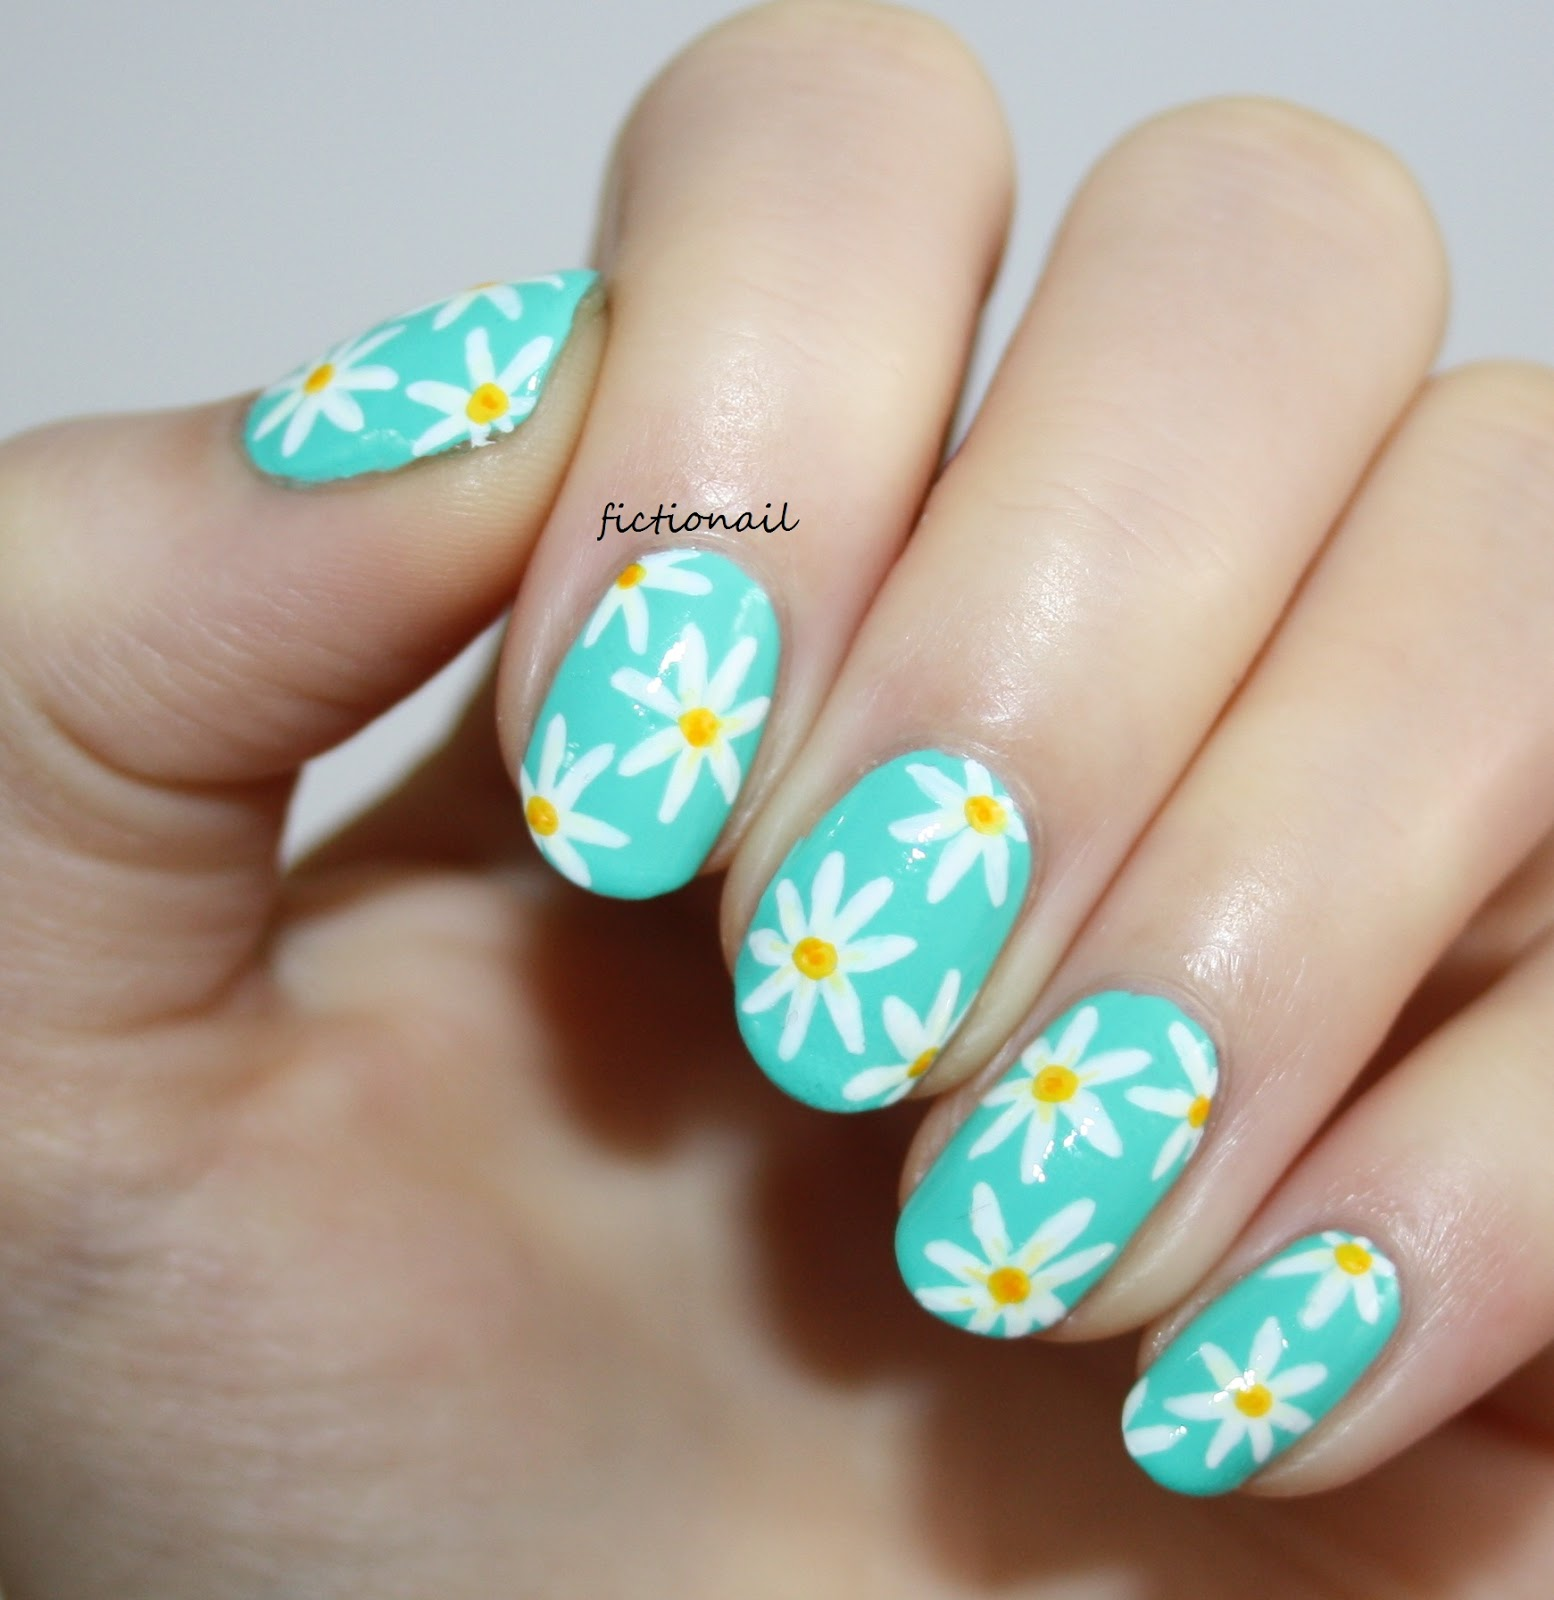 spring_daisy_nails.jpg